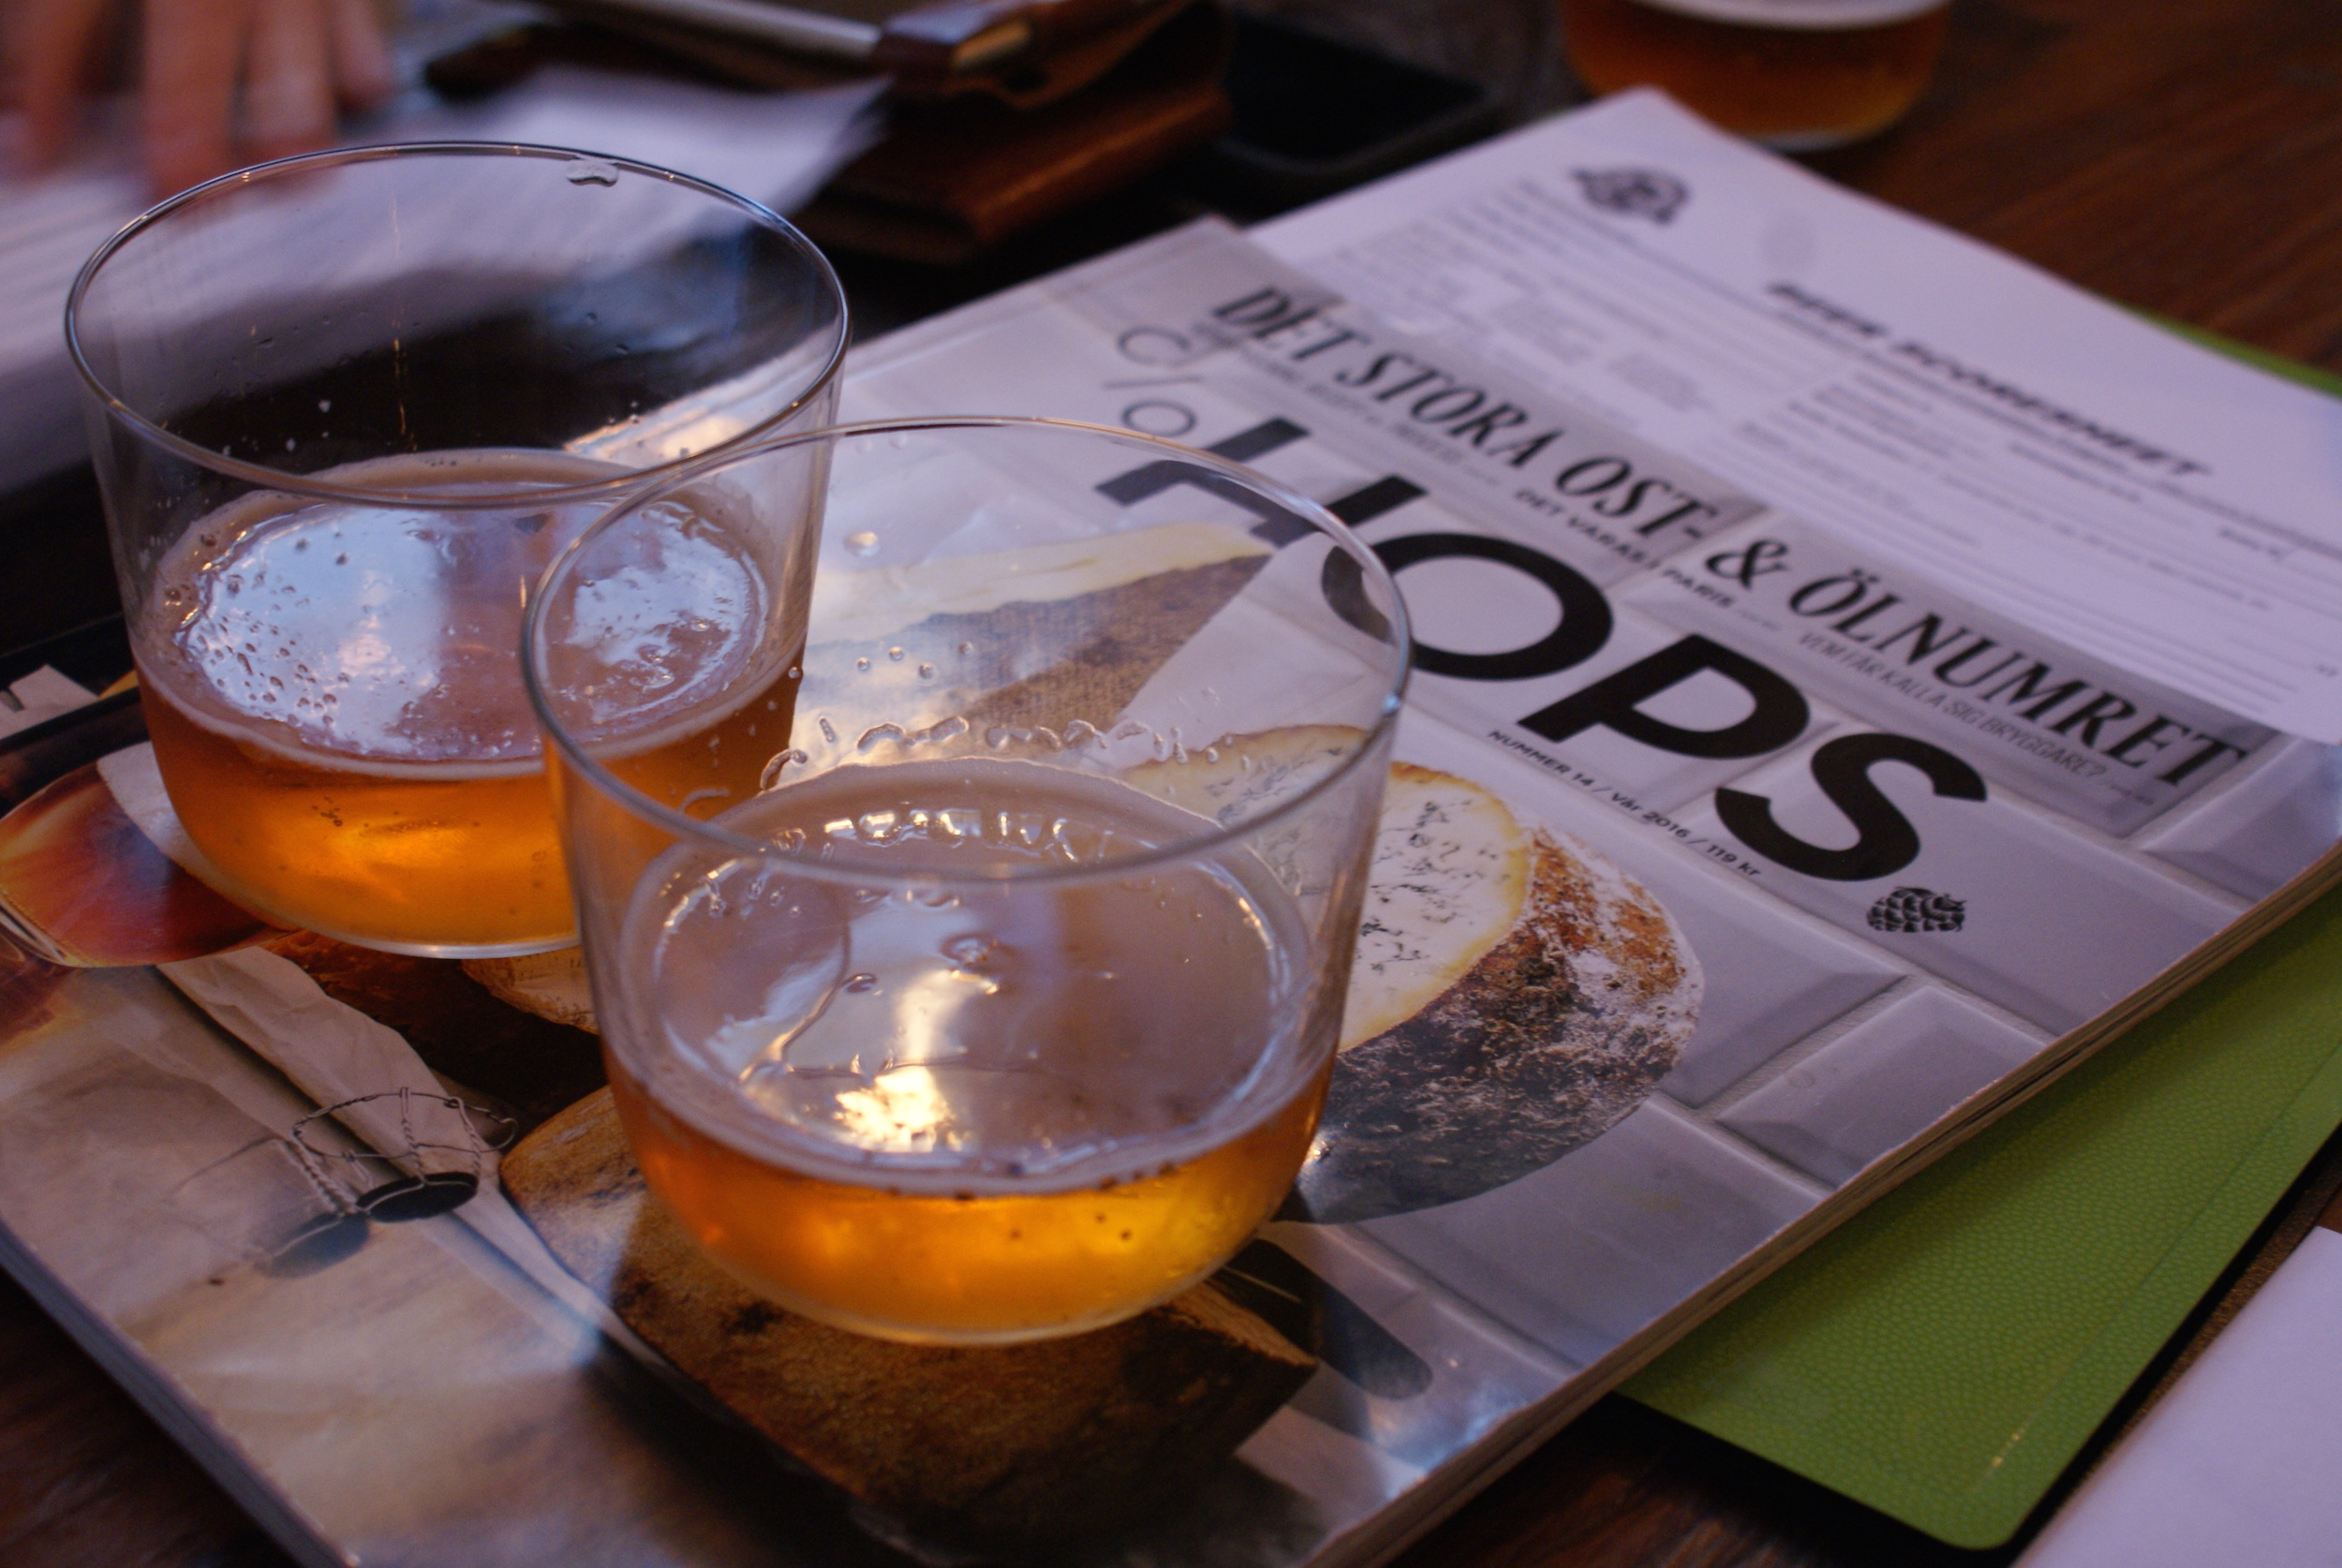 Stockholm craft beer tour public ourway tours for How to craft beer